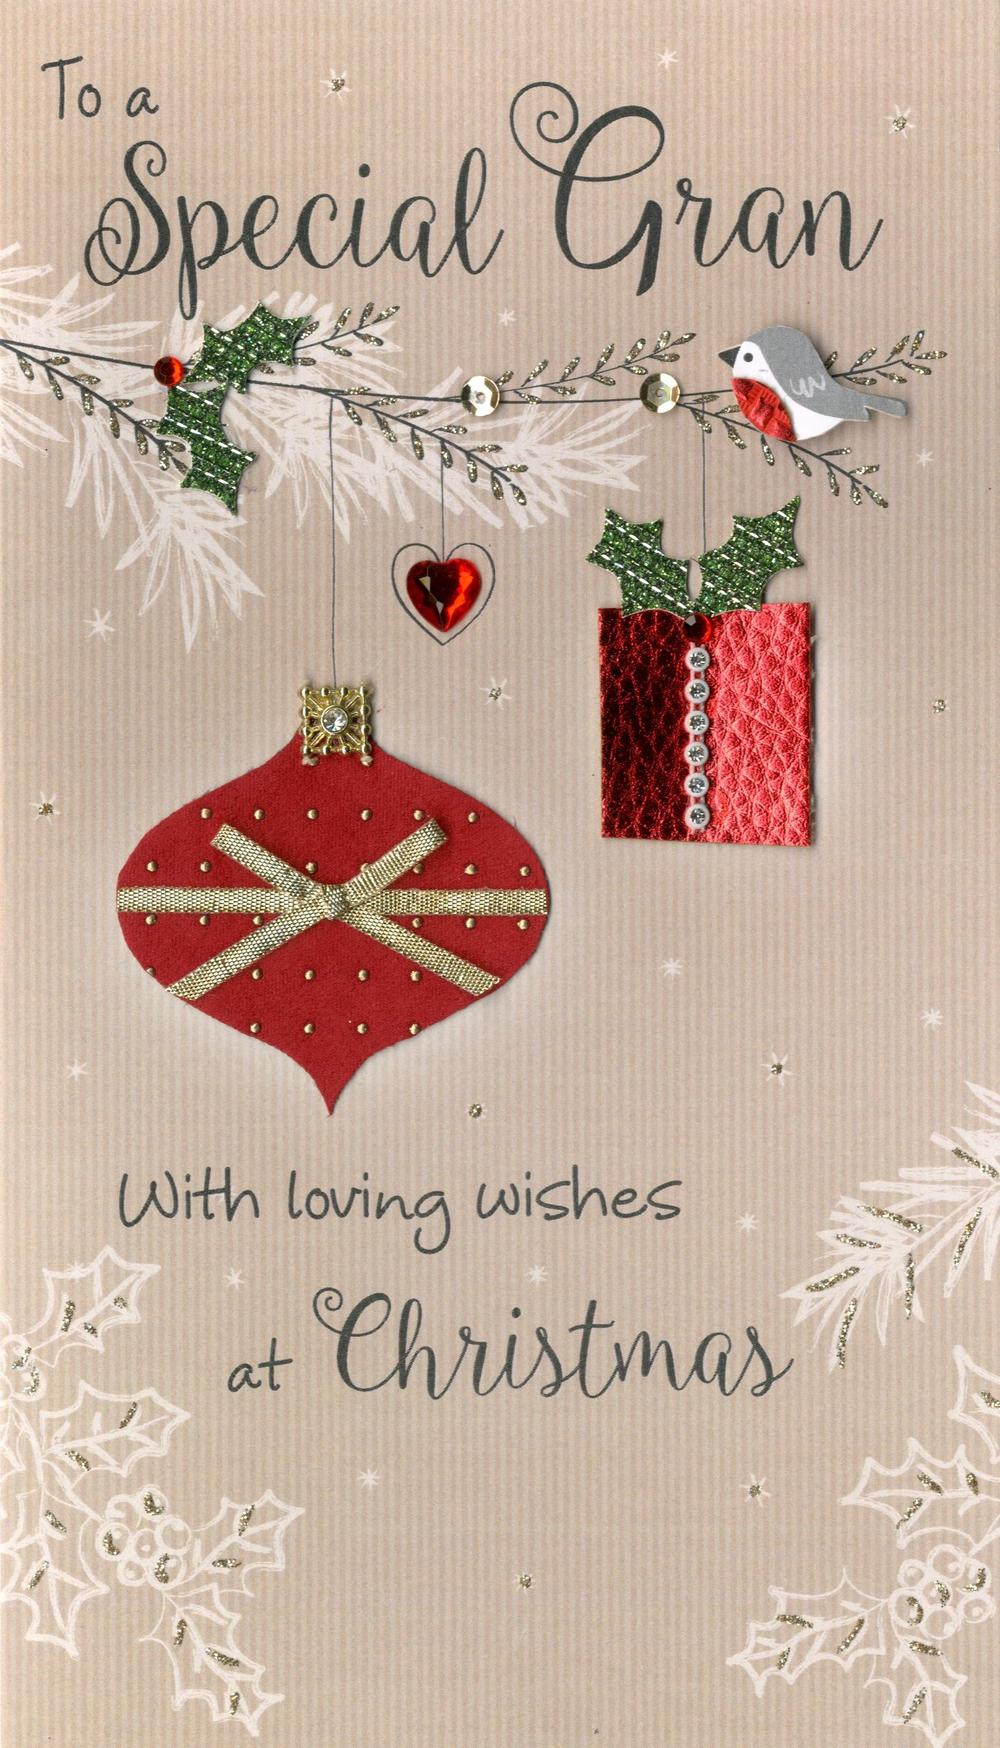 Special Gran Embellished Christmas Card